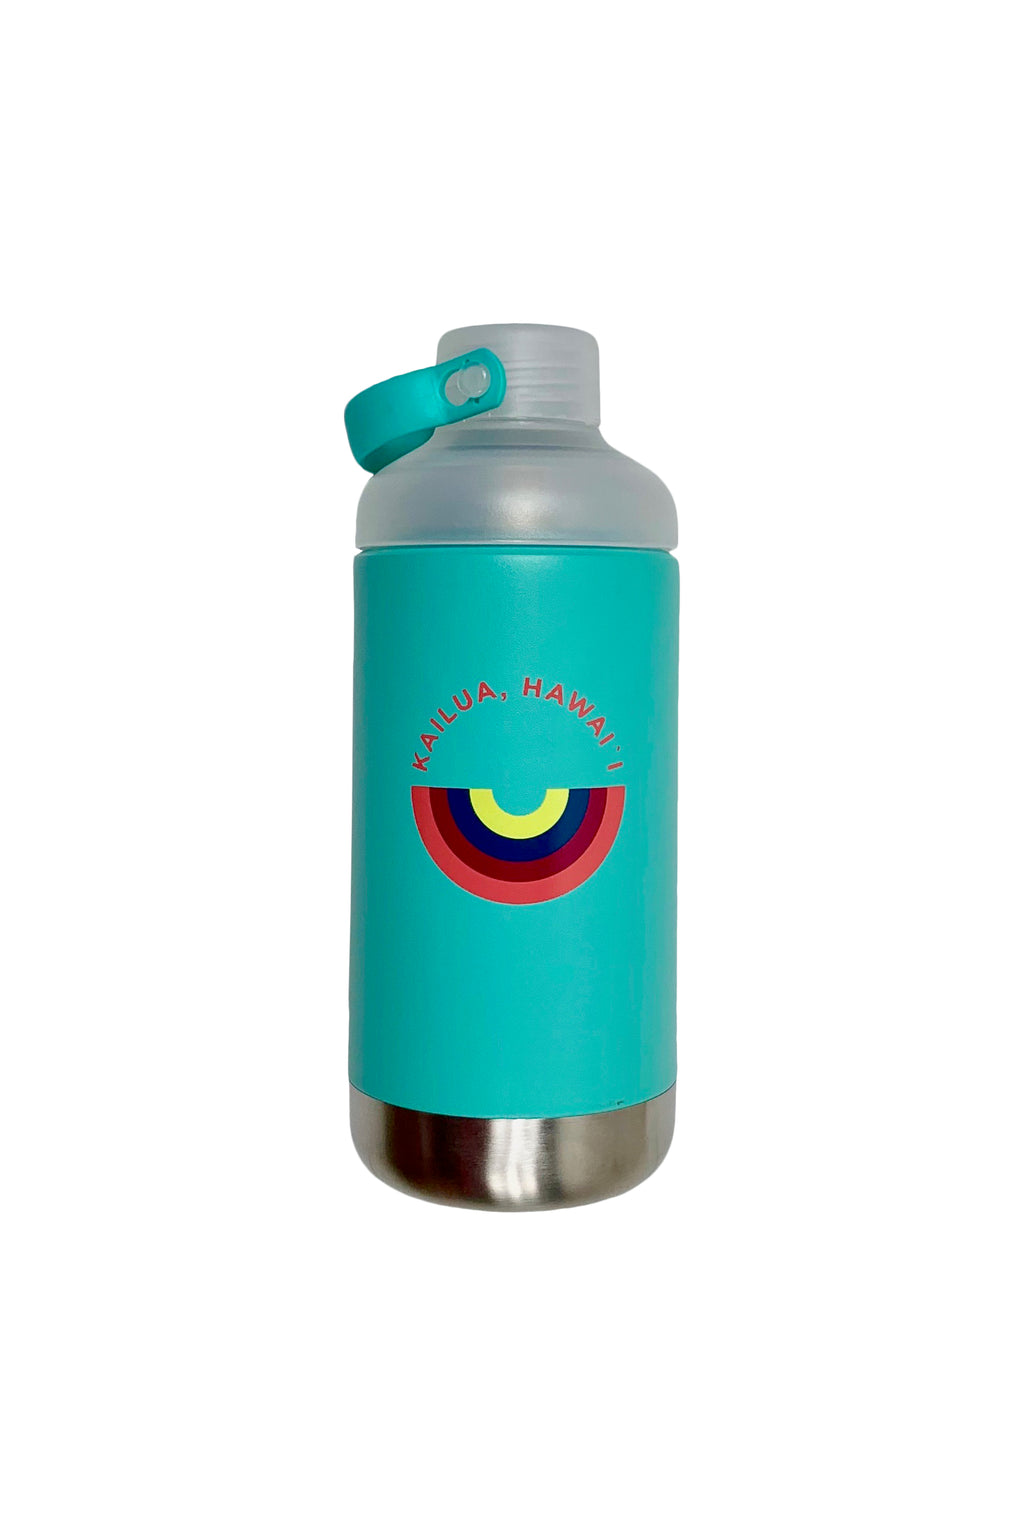 BikiniBird Stainless Steel Double Wall Water Bottle 16.9 oz